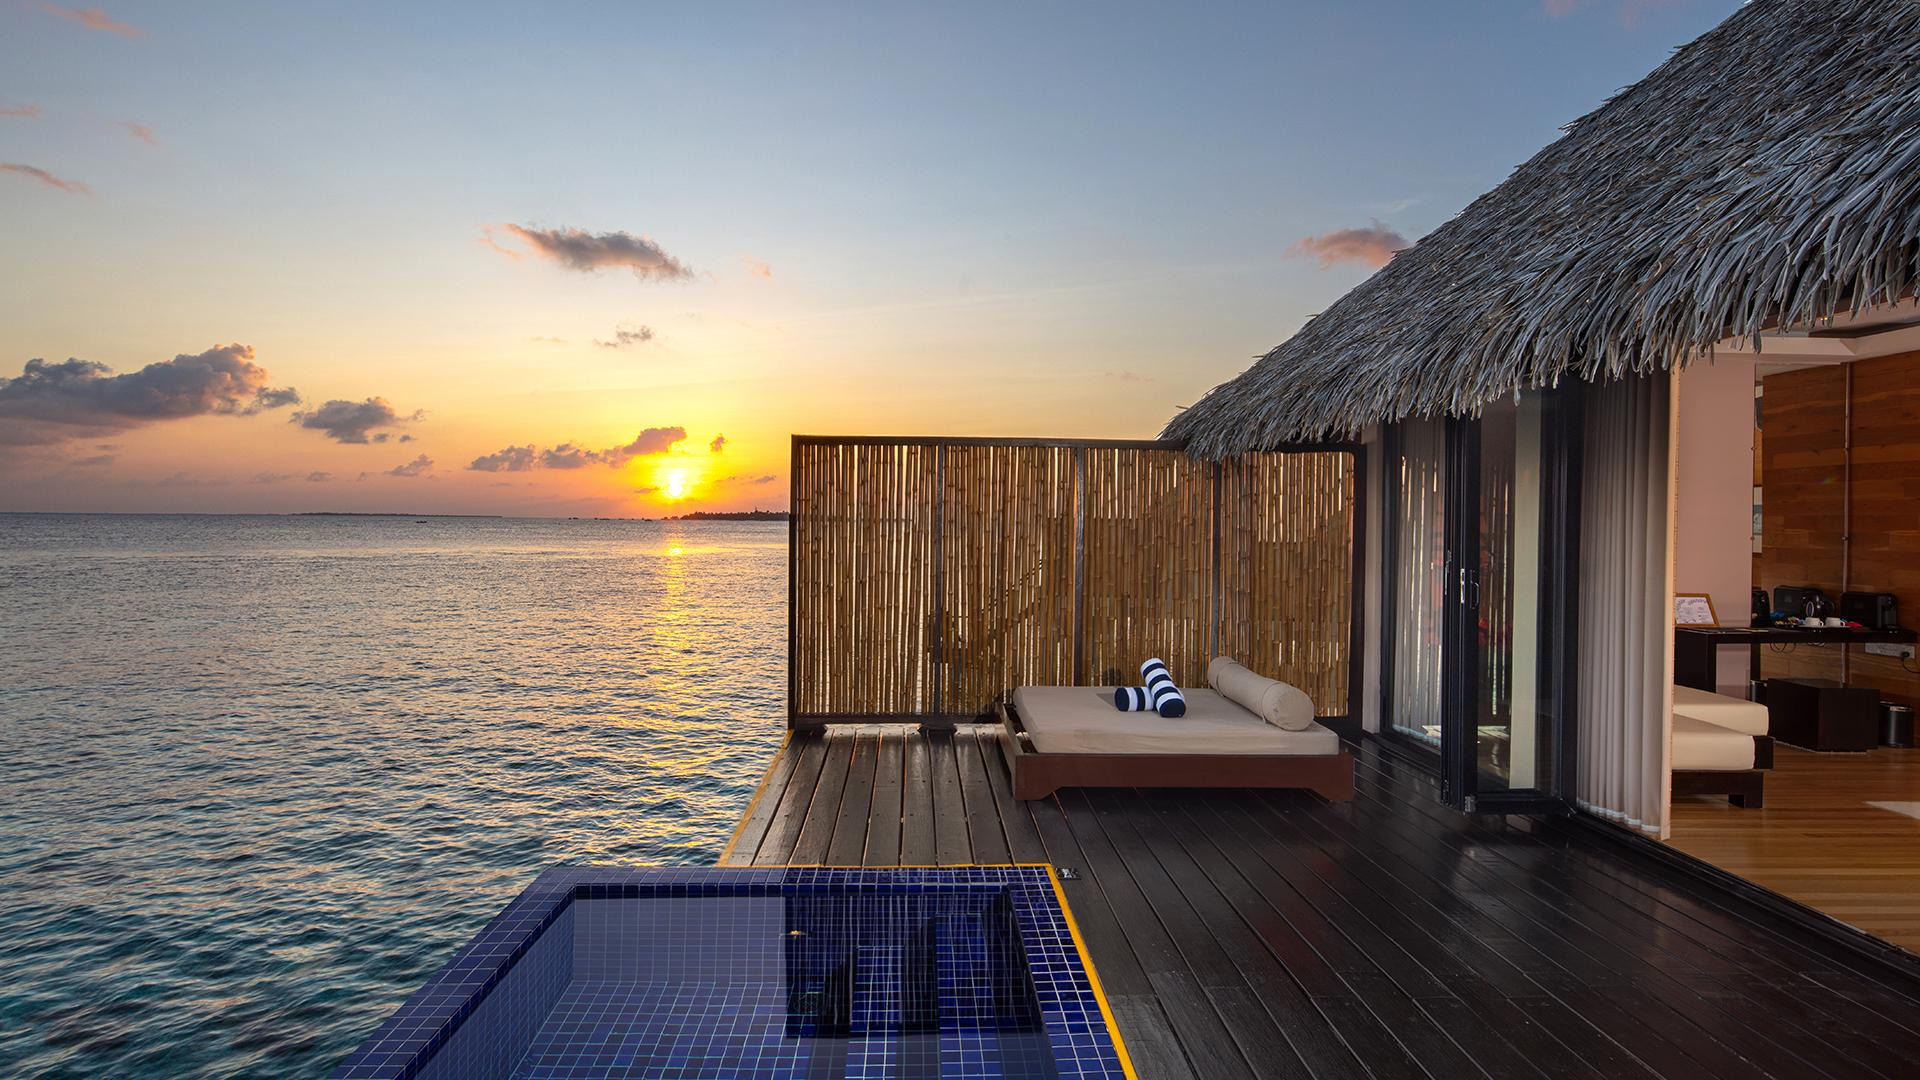 Sunset Water Villa image 1 at Adaaran Prestige Vadoo by Kaafu Atoll, North Central Province, Maldives